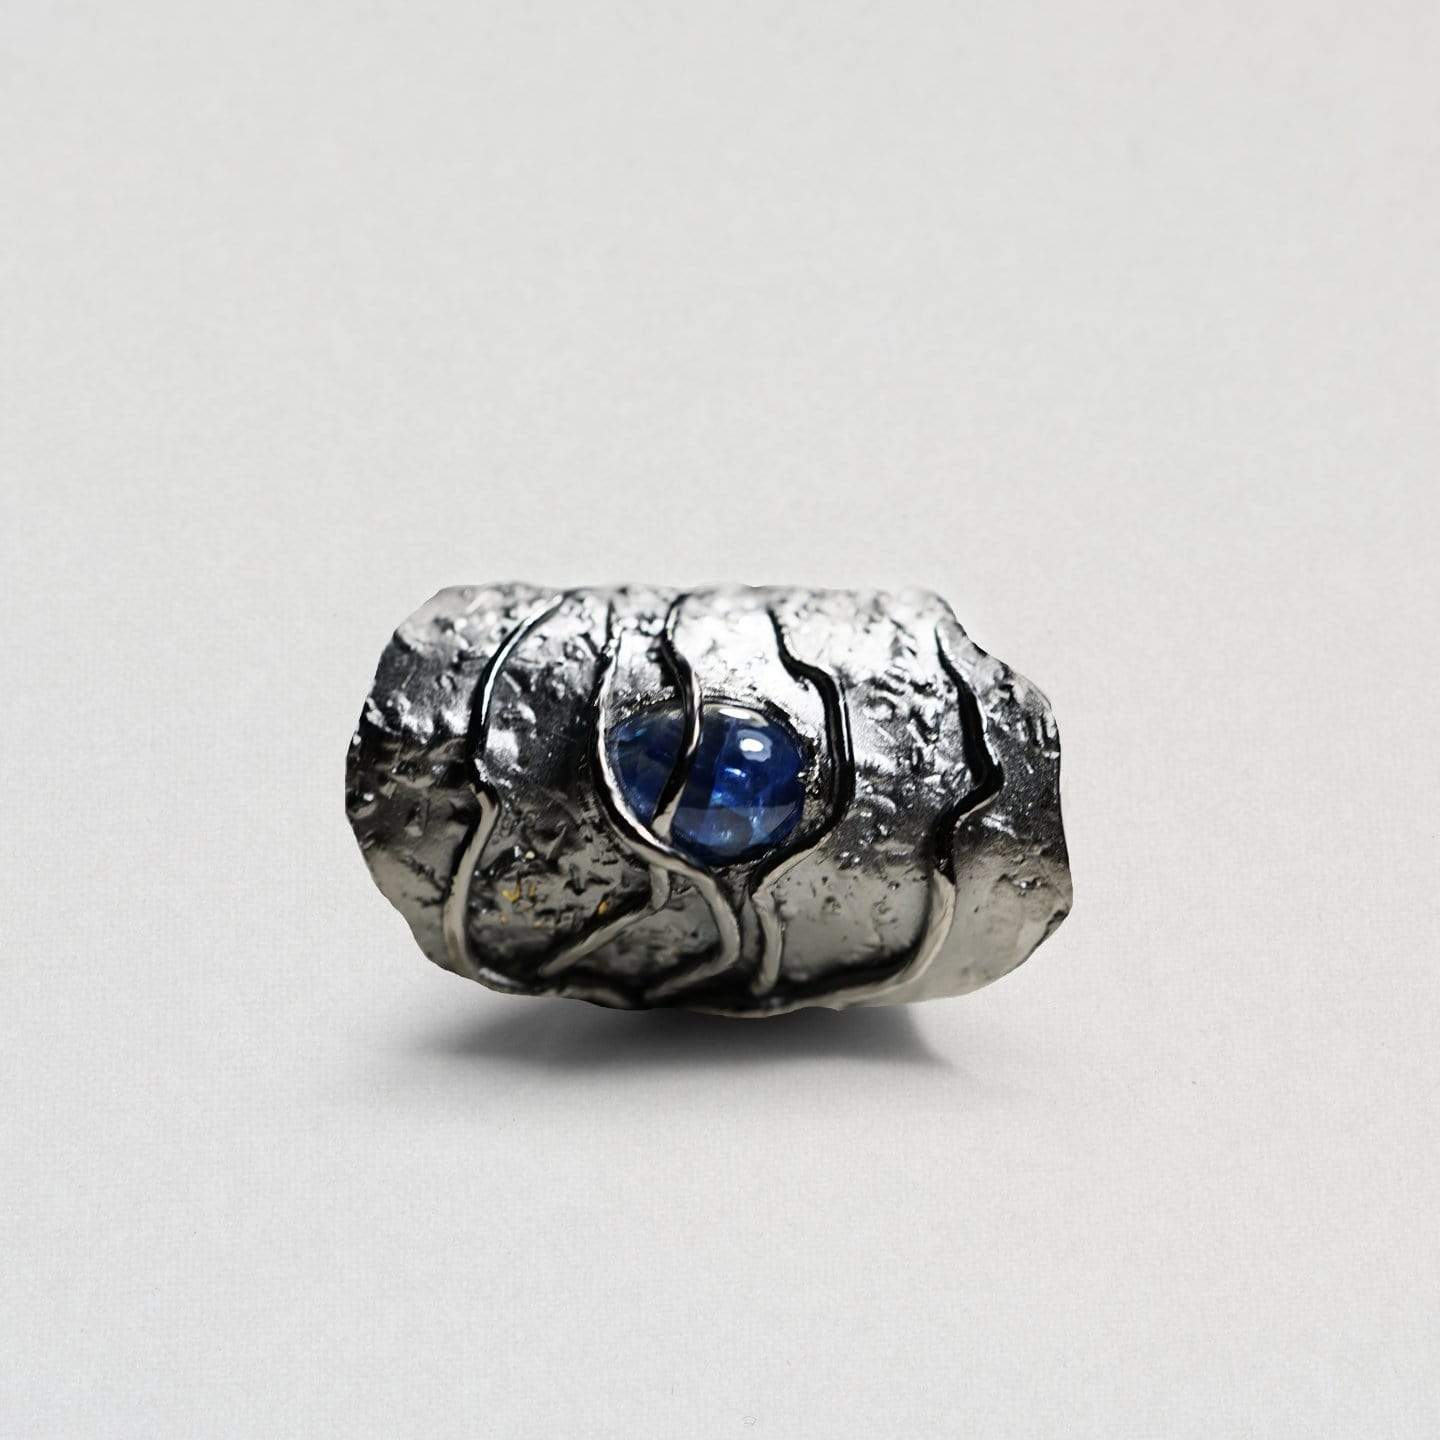 Mairon Ring, Exclusive, gray, Rhodium, Sapphire, spo-disabled, StoneColor:DeepBlue, Style:Everyday, Type:StoneCandyWired Ring